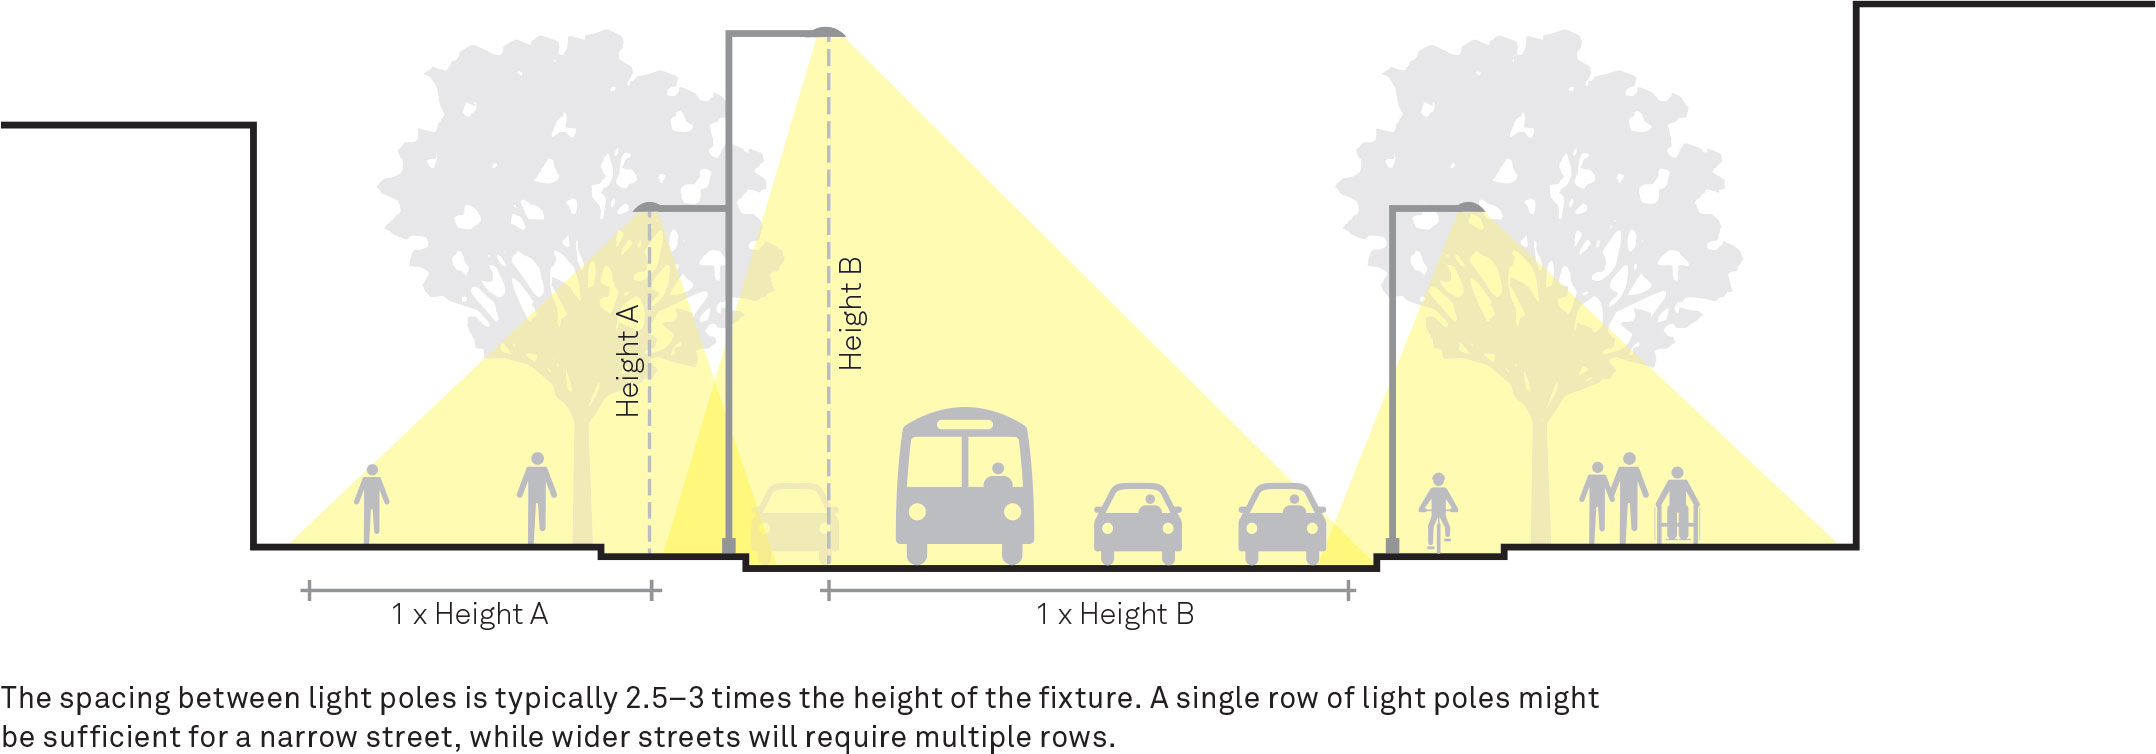 Lighting Design Guidance